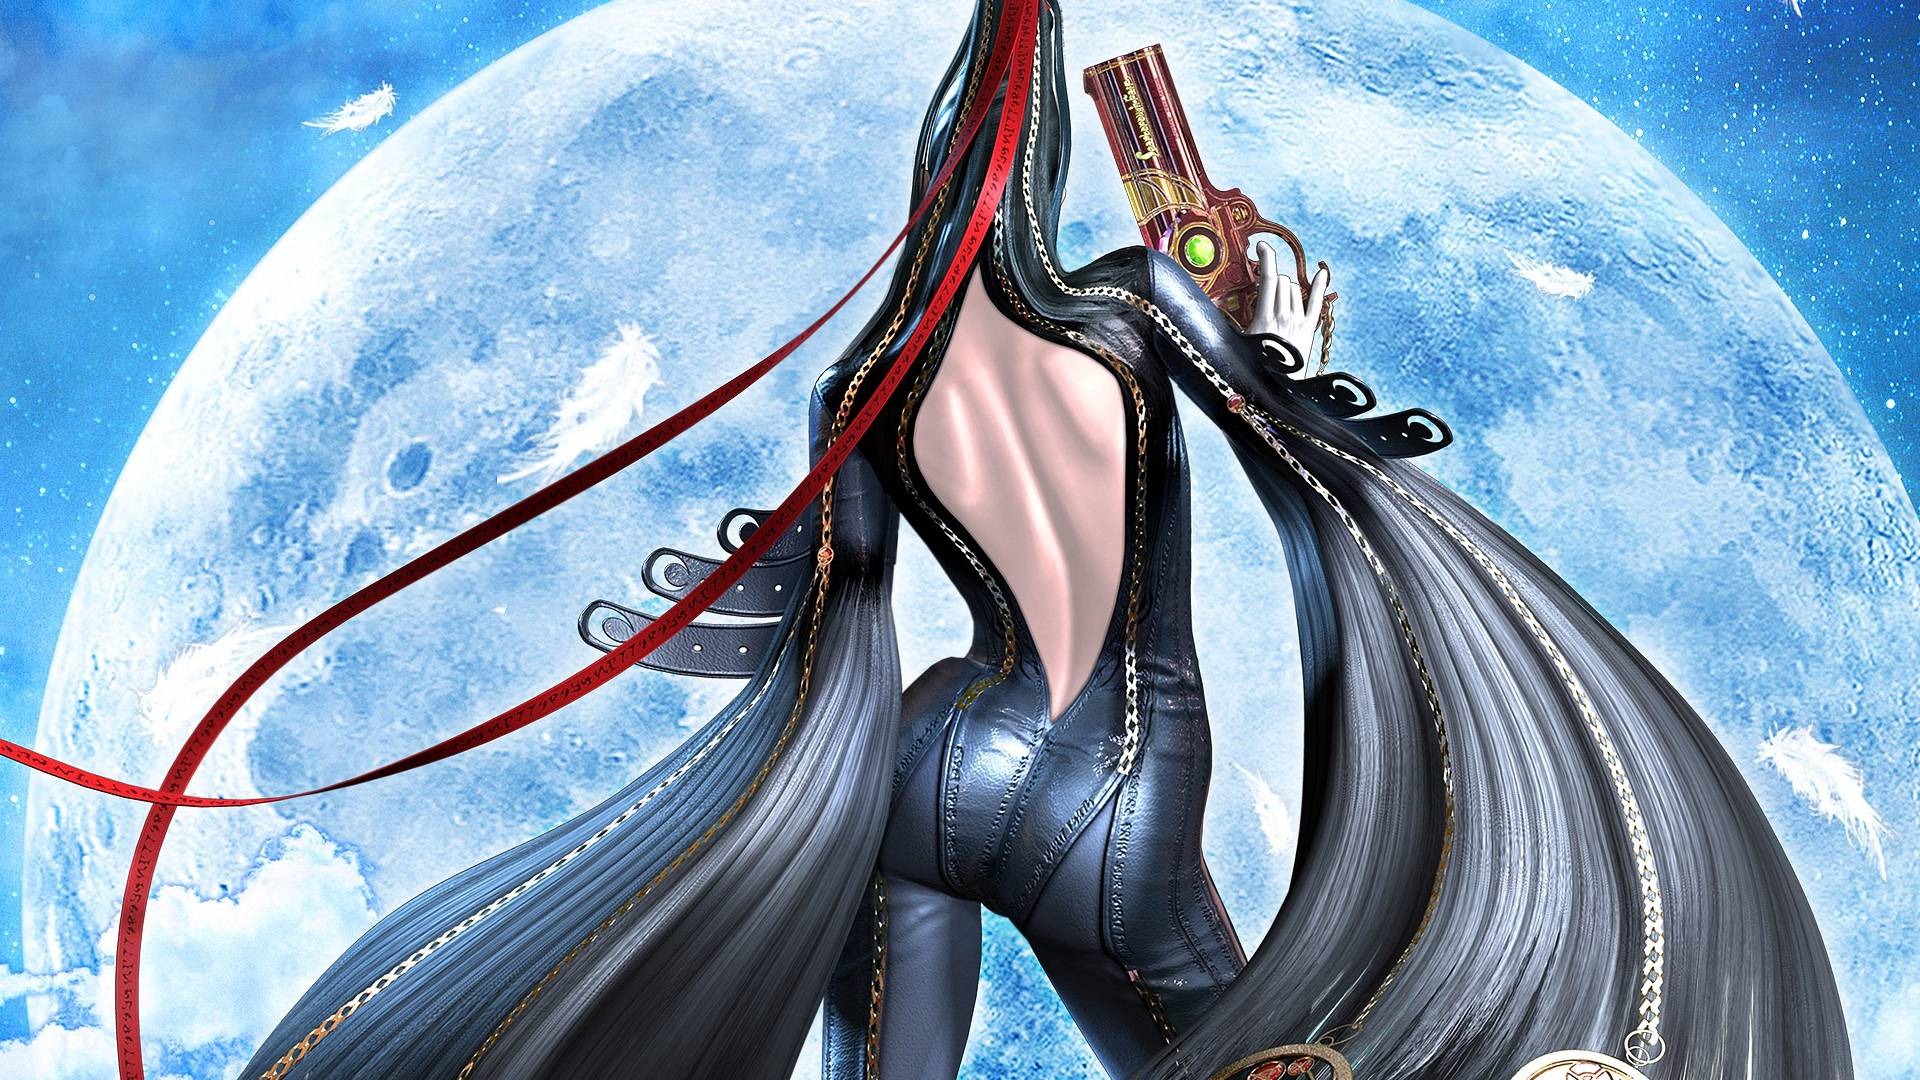 bayonetta-steam-cd-key-satin-al-durmaplay.jpg